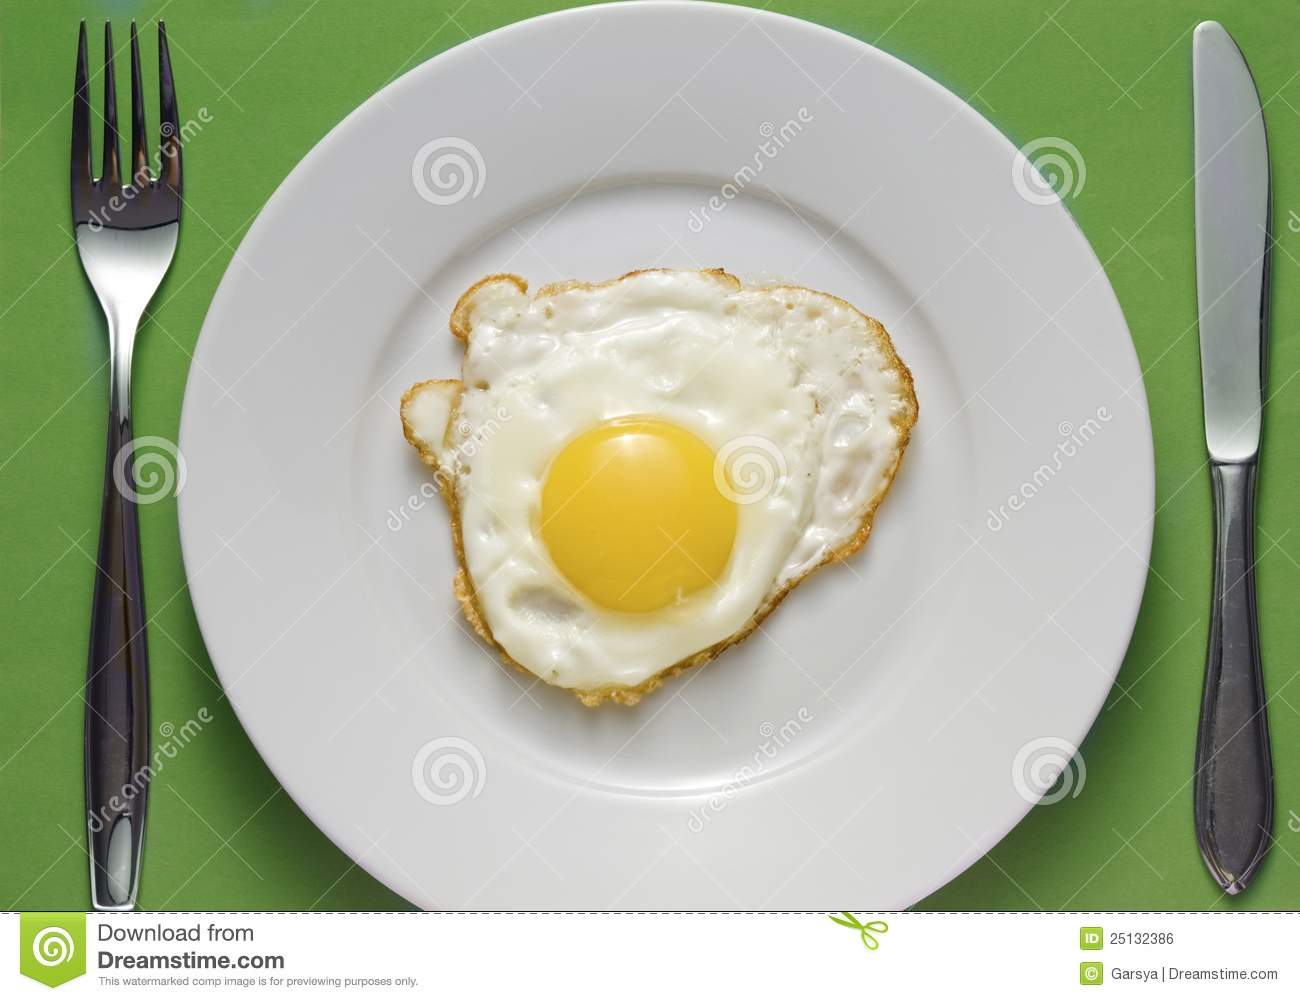 Fried Egg On Plate From Above Stock Photo - Image of ...  |Fried Eggs On A Plate